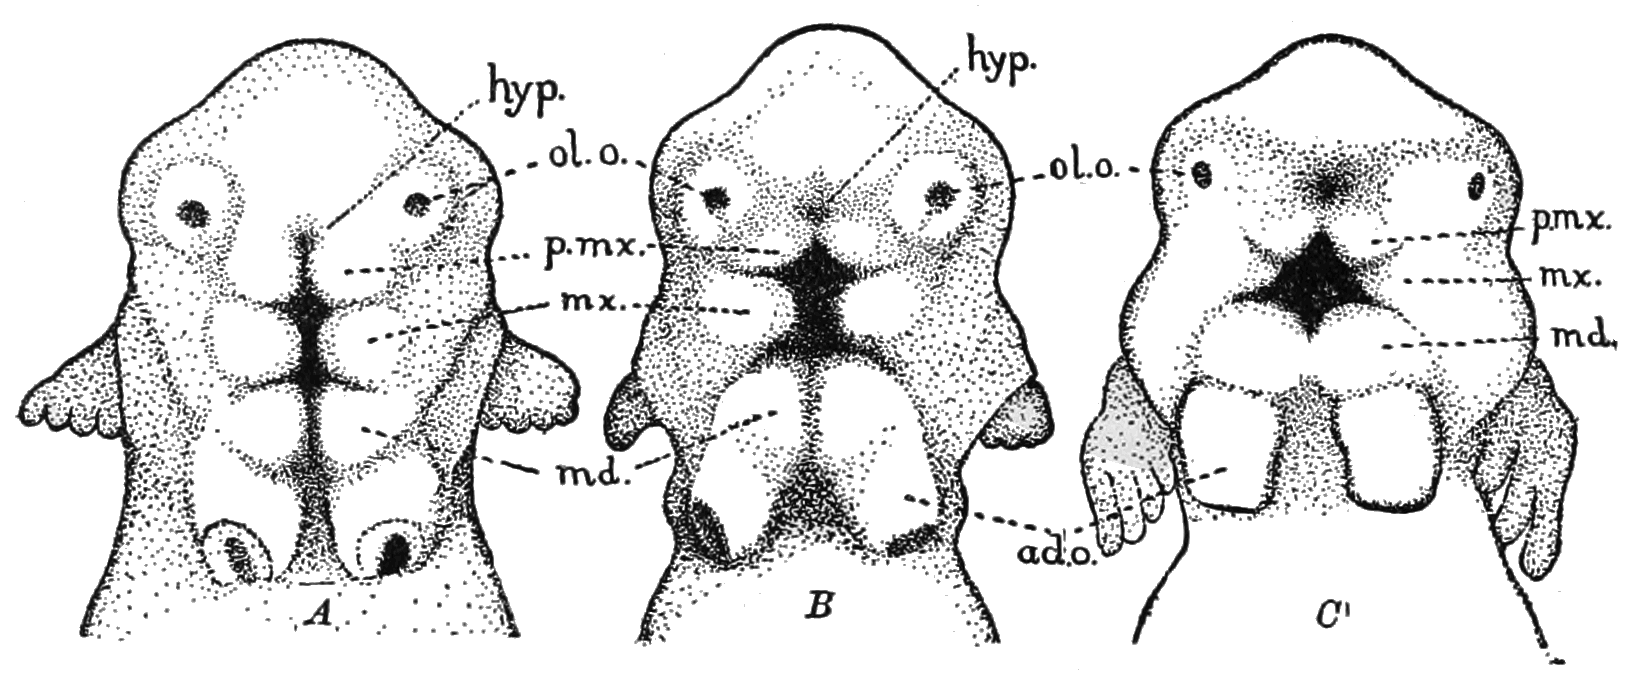 PSM_V82_D438_Head_of_an_embryo_frog.png